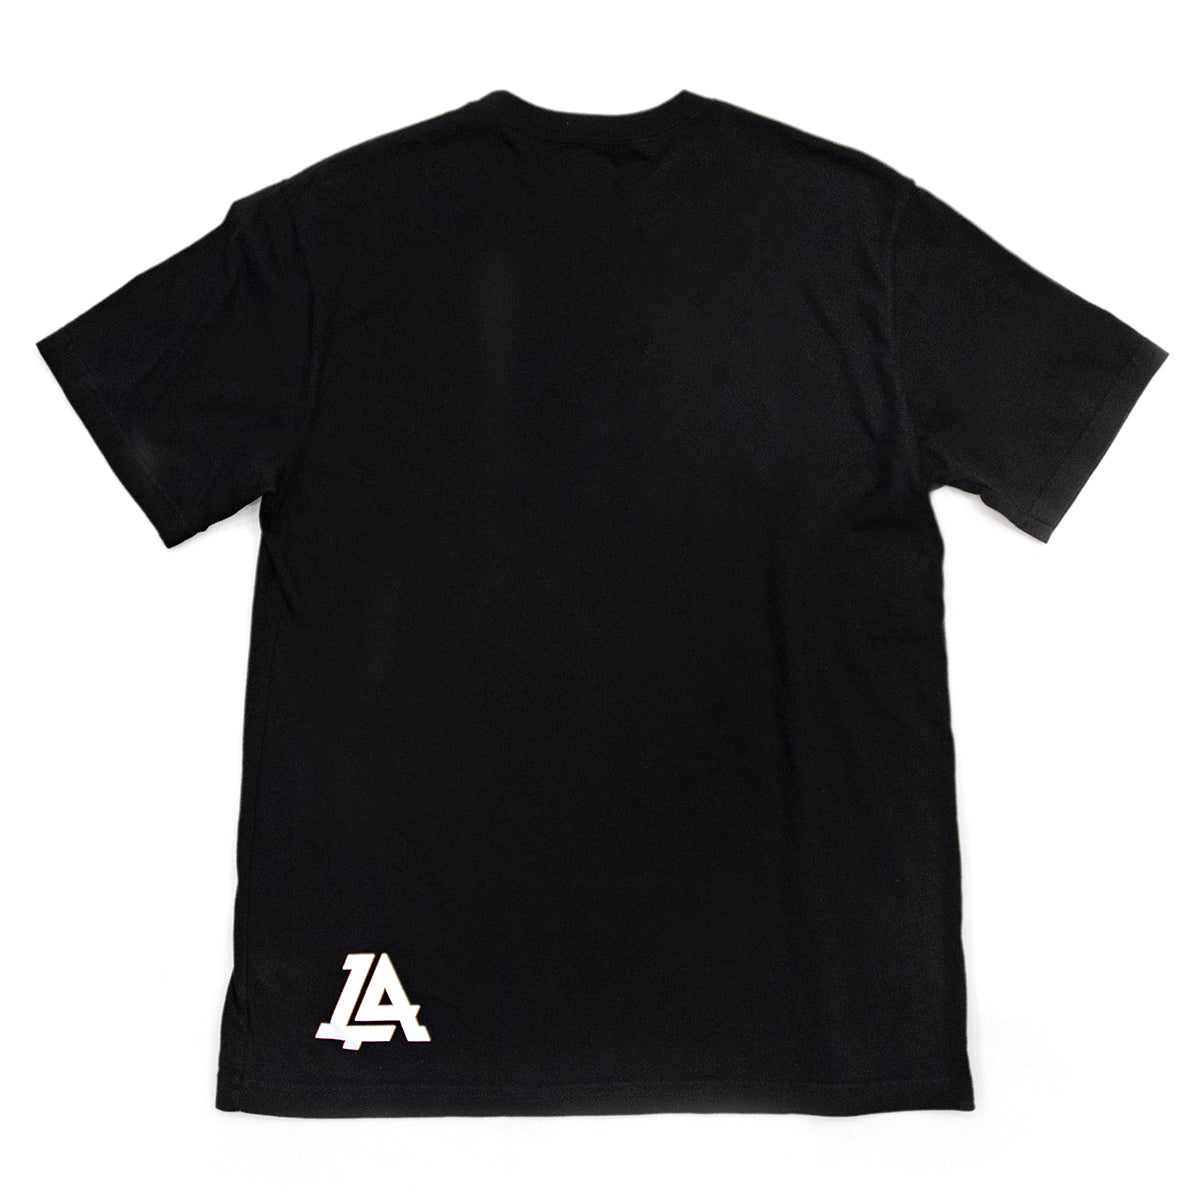 Lost Art Canada - white on black monogram logo tee back view